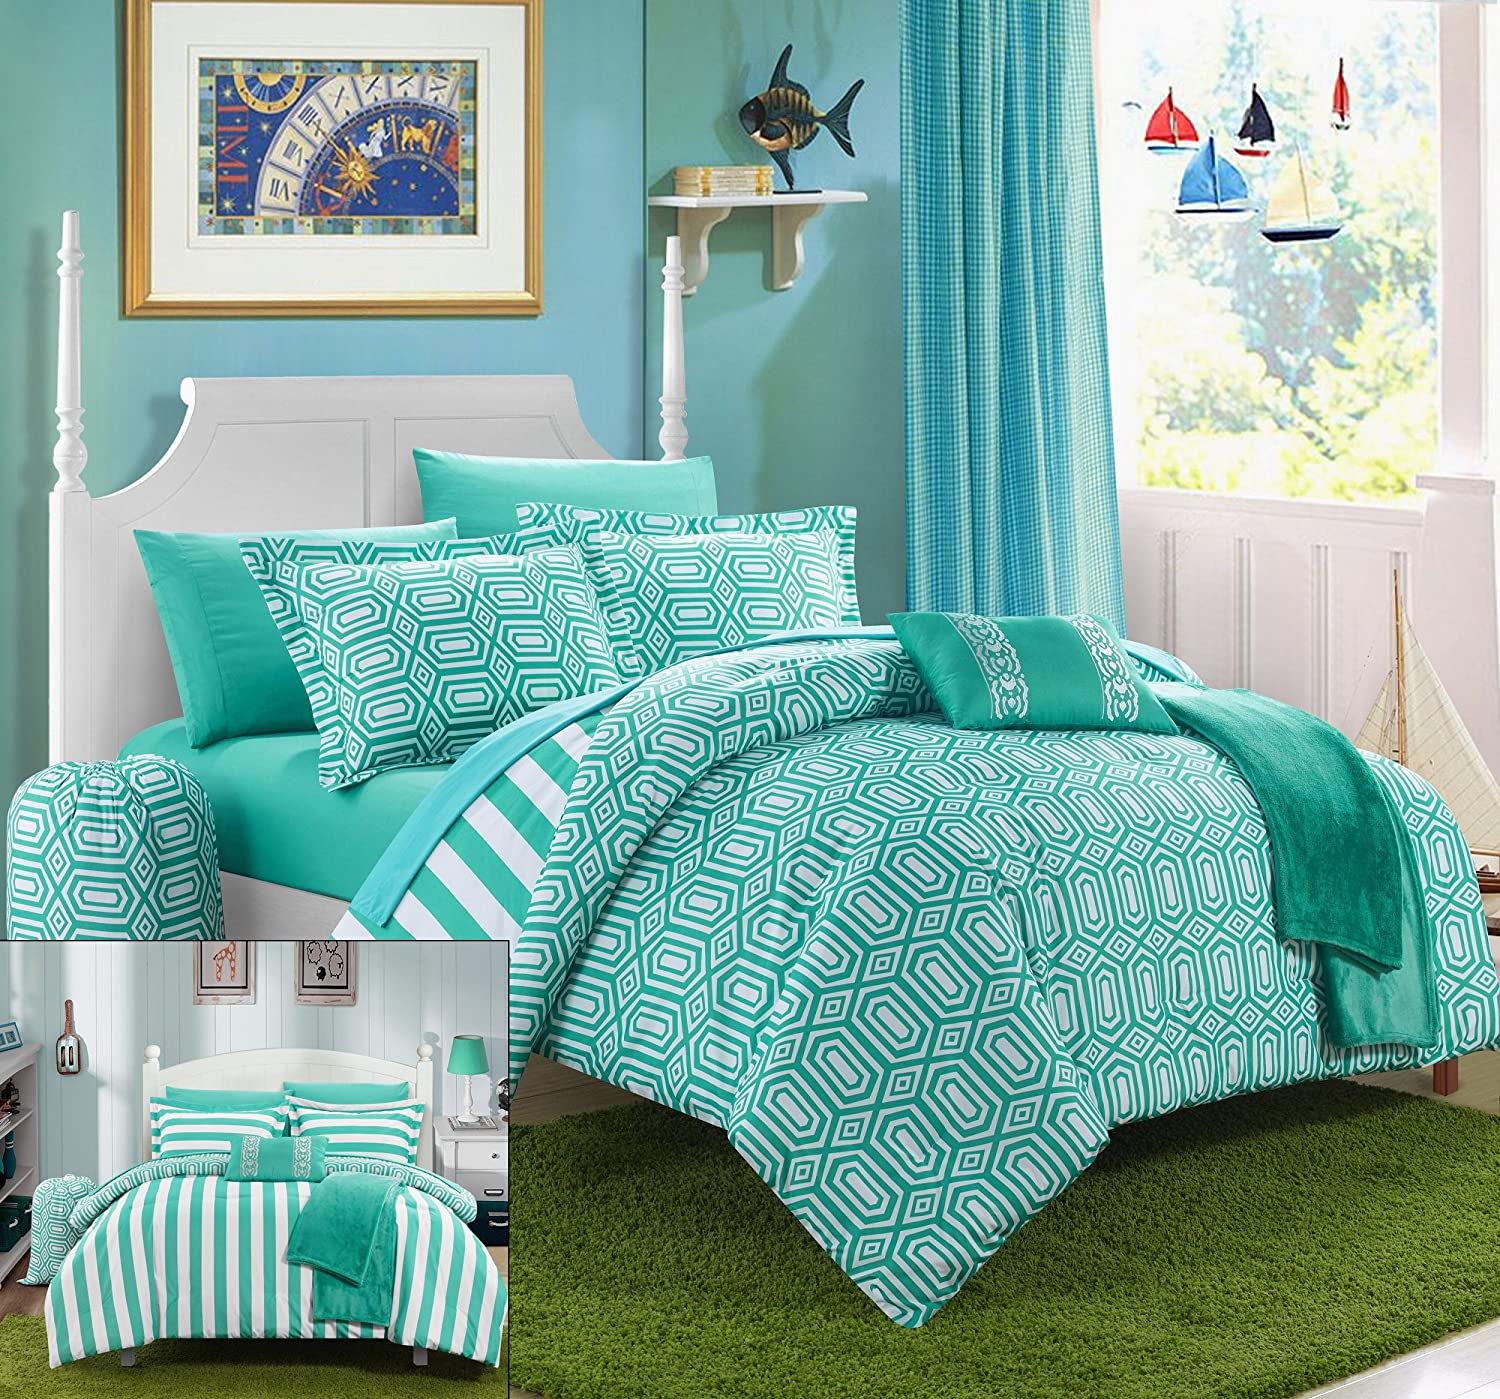 Chic Home 10 Piece Paris Reversible Geometric and Striped Comforter Sheet Set, Full, Aqua